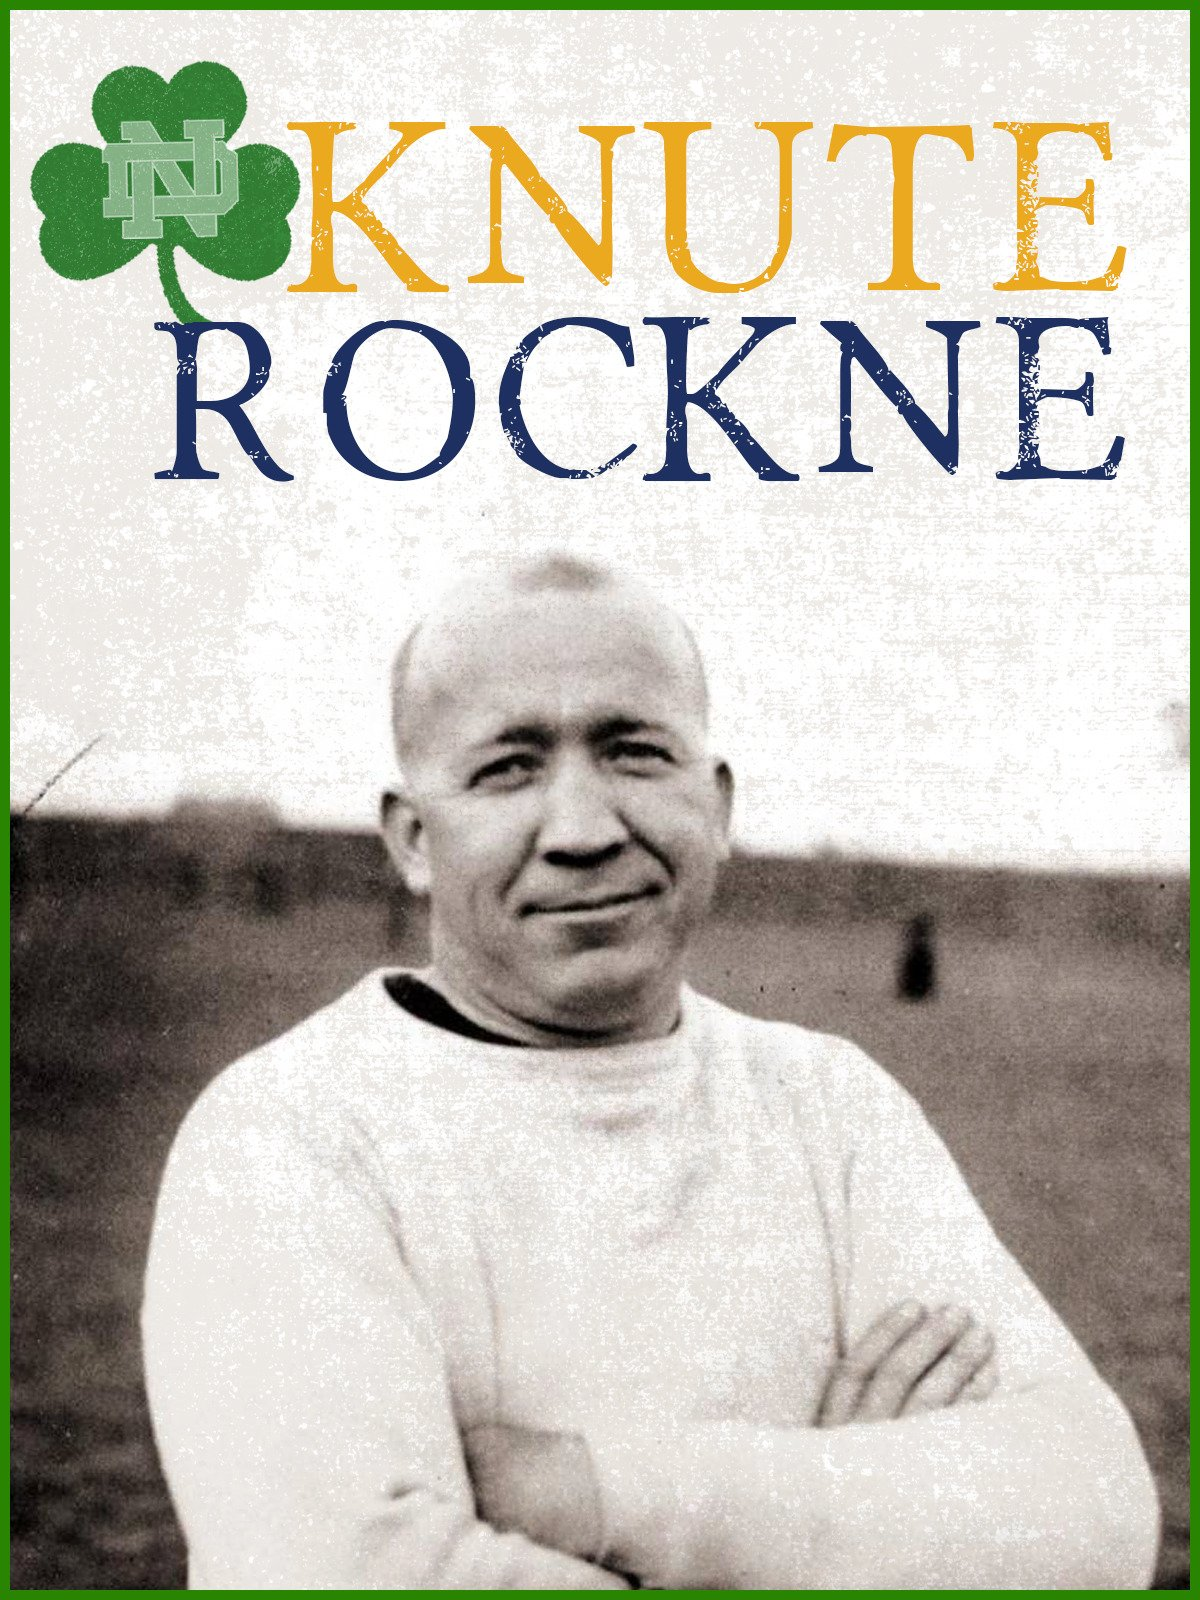 Knute Rockne on Amazon Prime Video UK